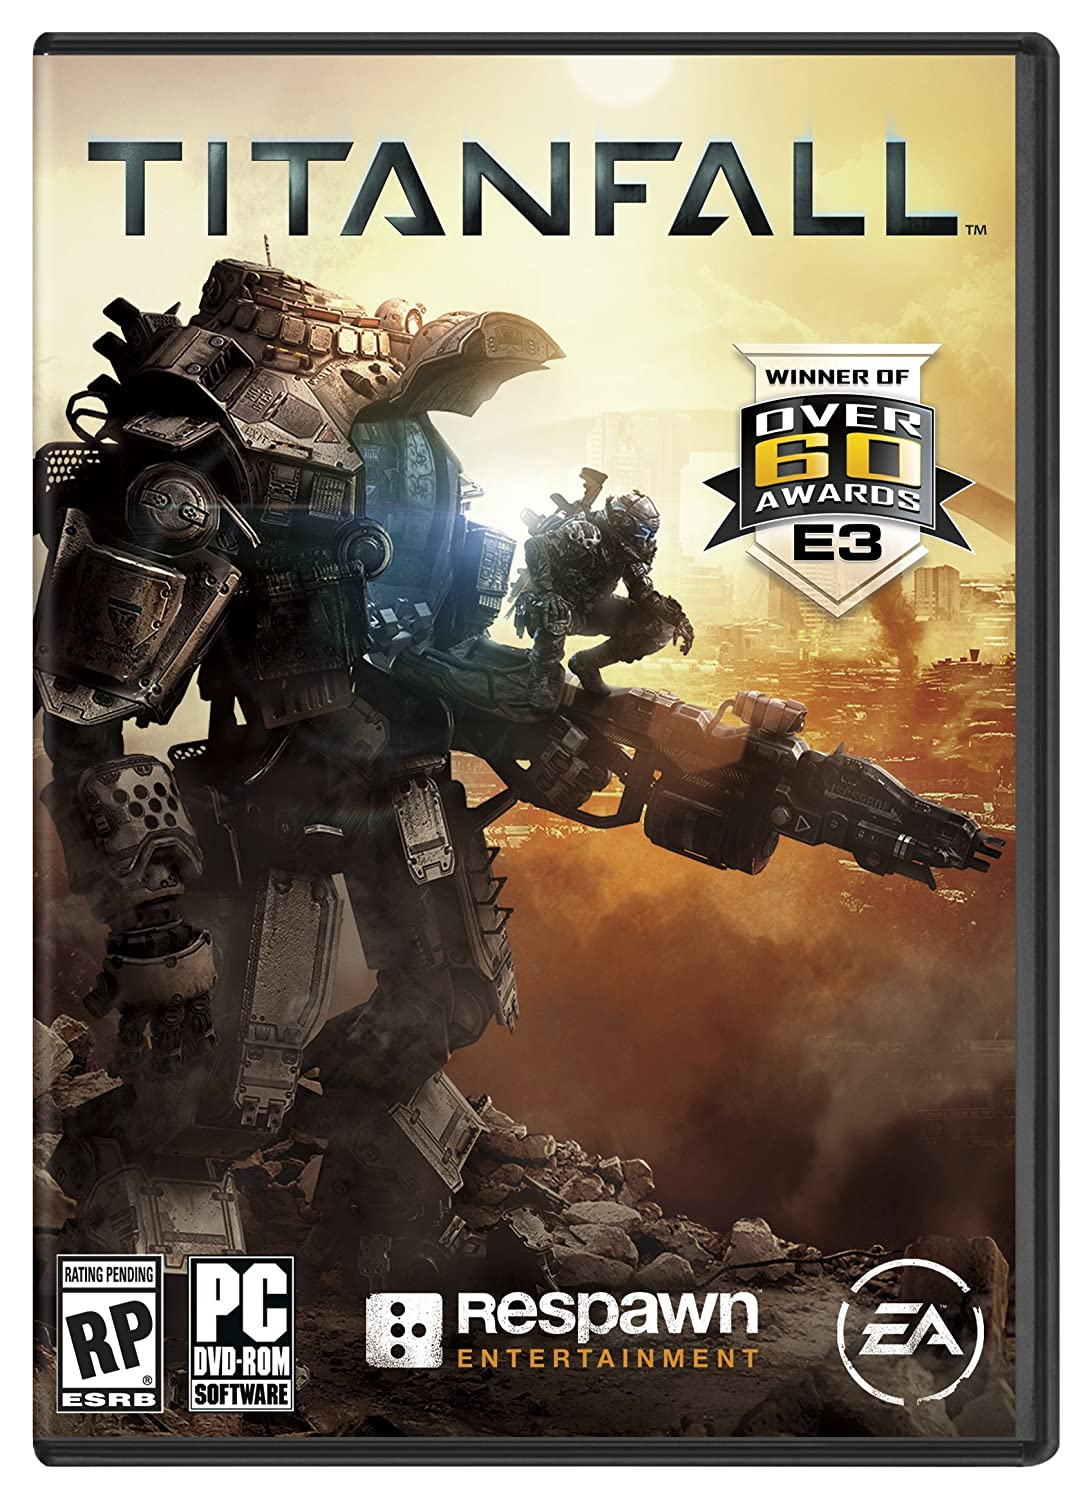 TITANFALL CLE PAS CHER !